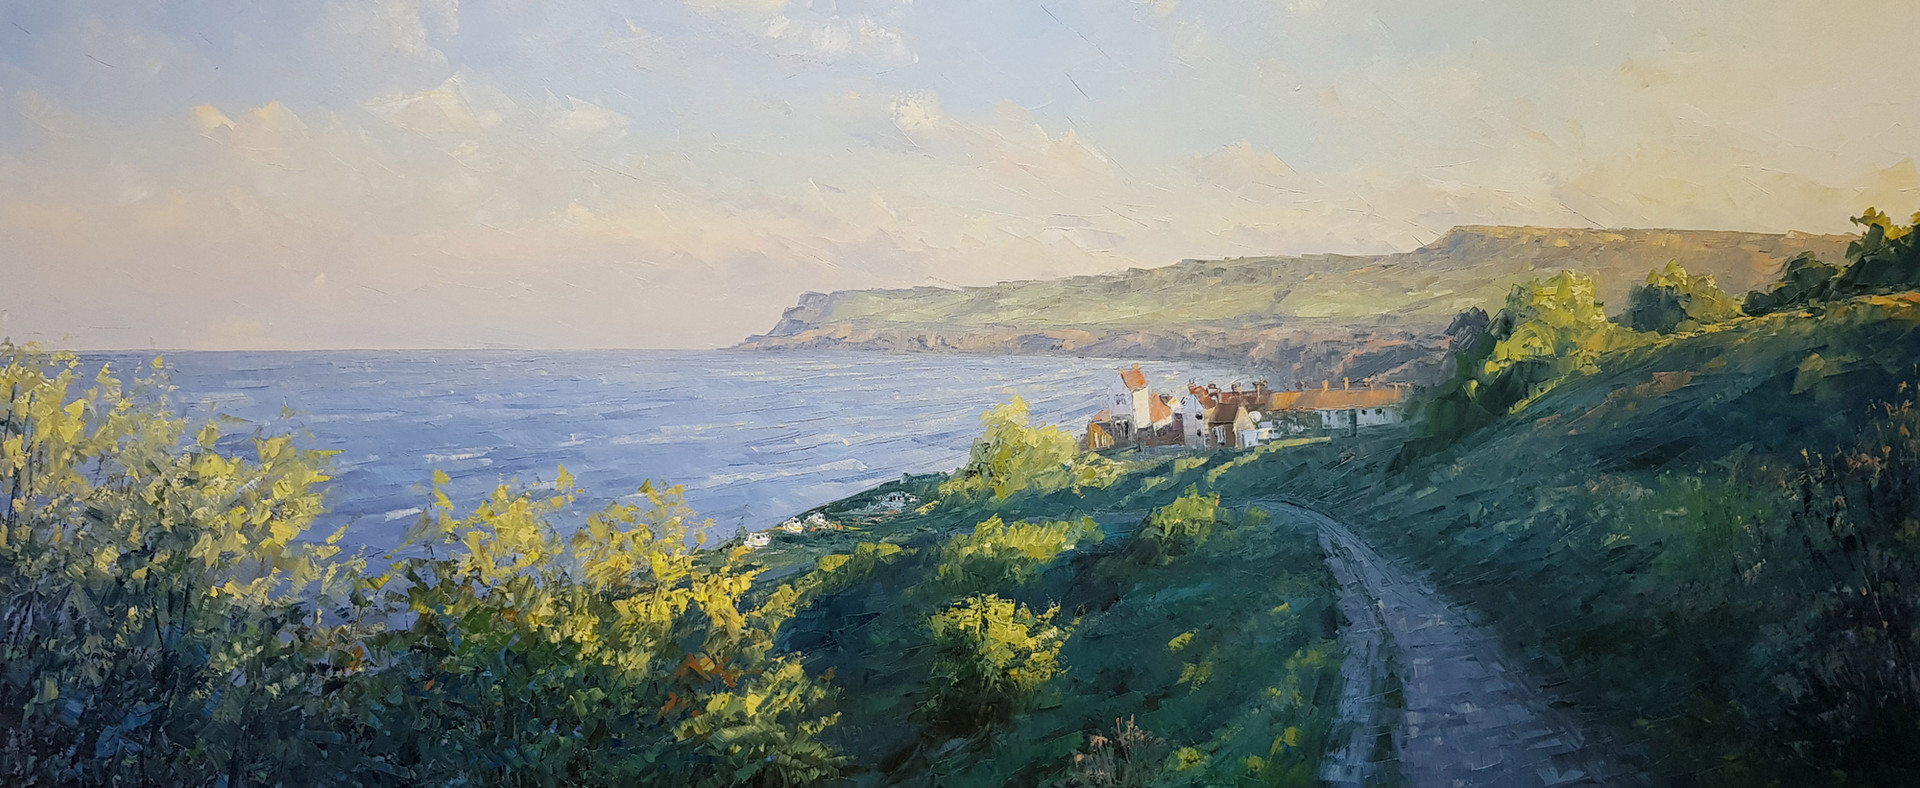 Robin Hood's Bay from below the Victoria Hotel.